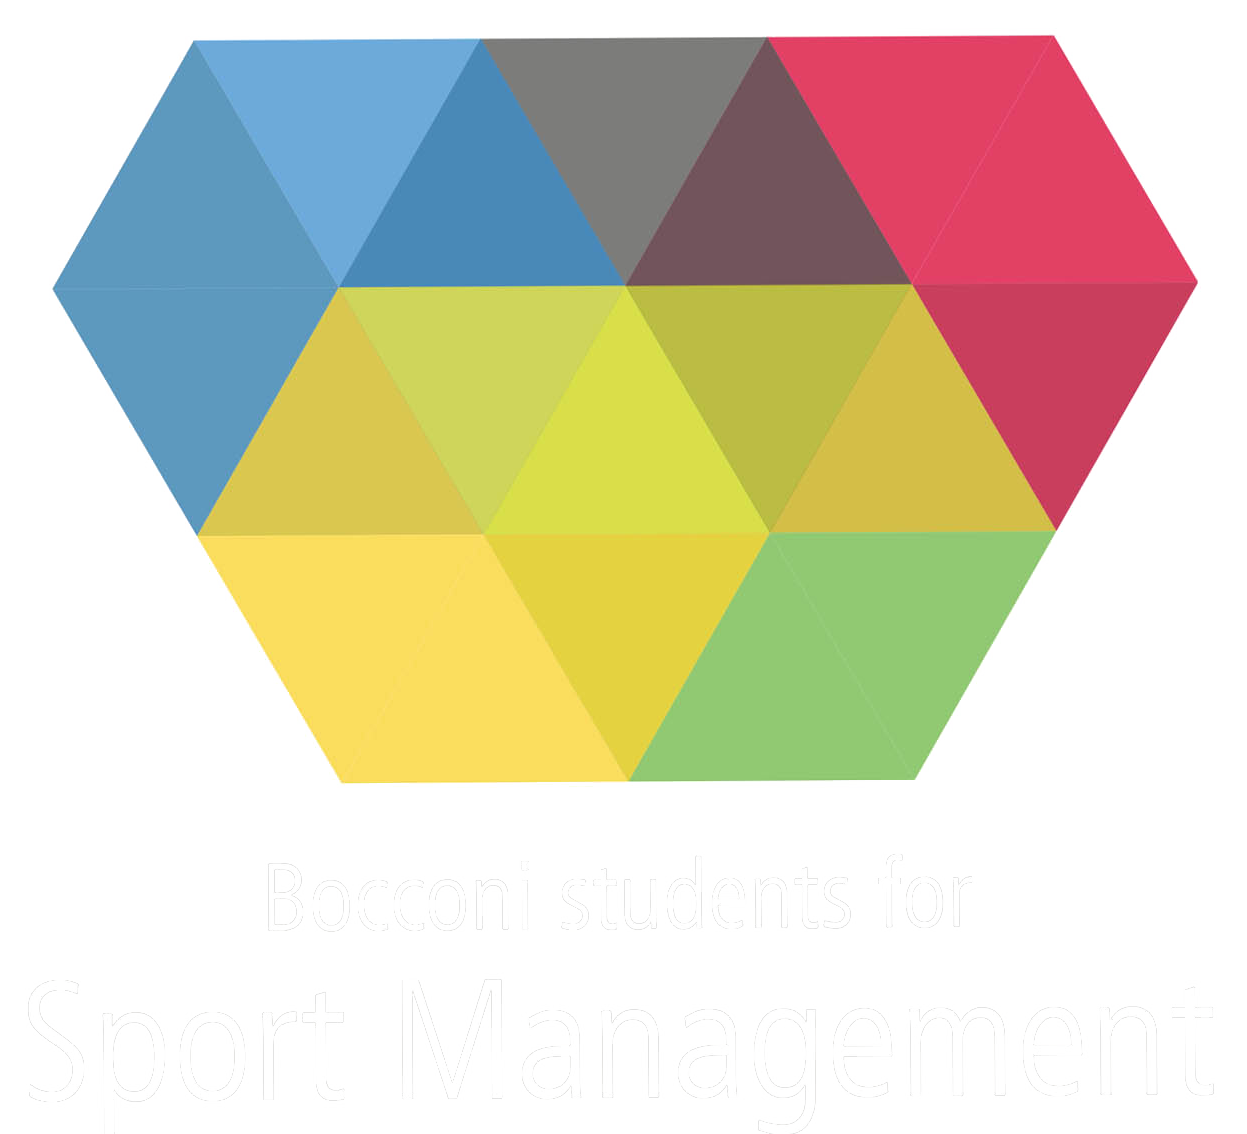 BOCCONI STUDENTS FOR SPORT MANAGEMENT